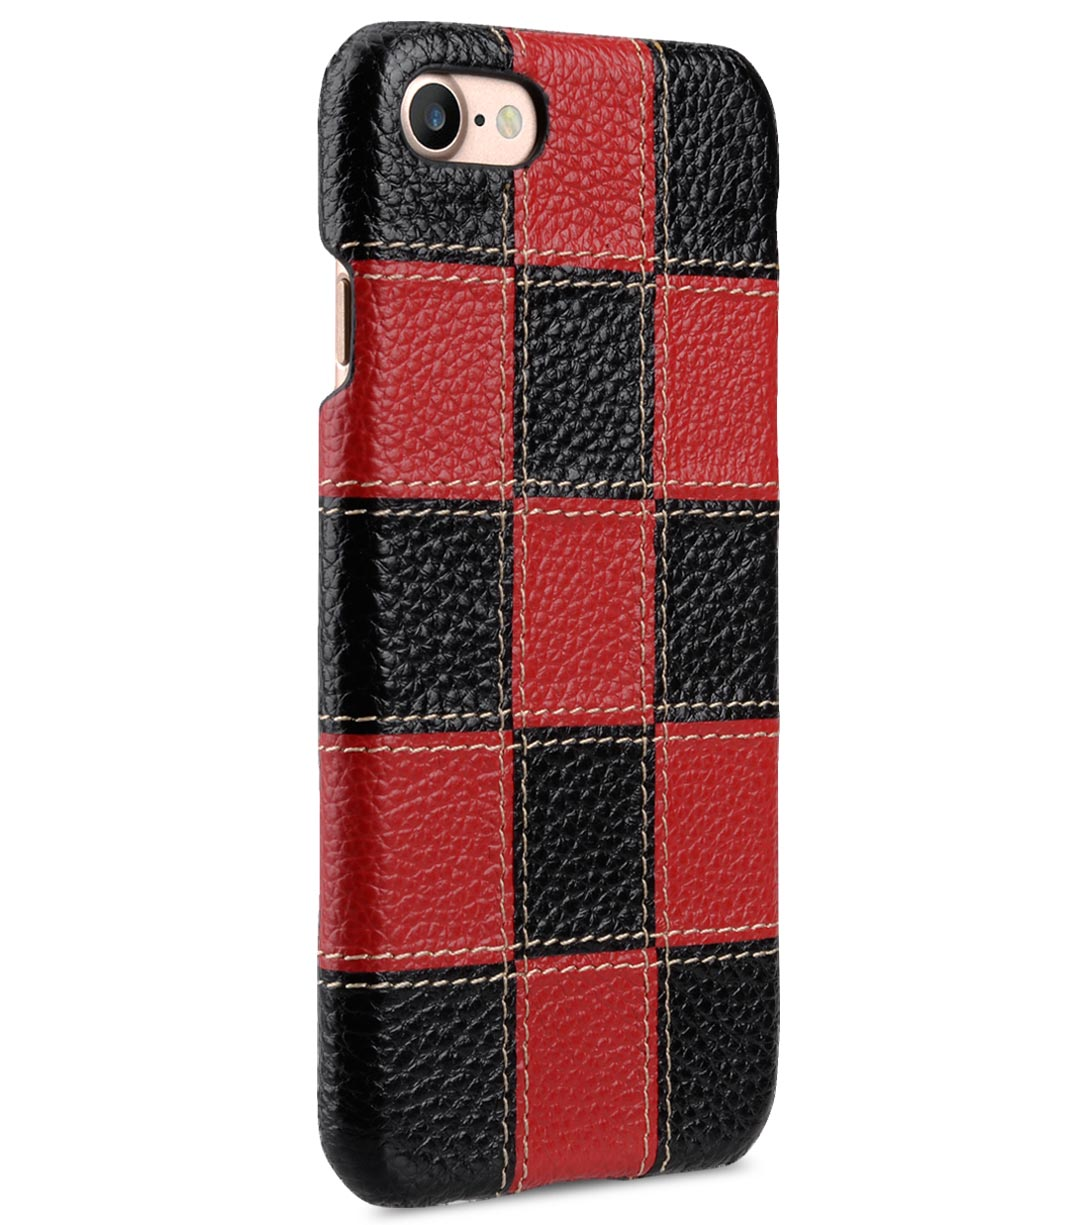 "Melkco Patchwork Series Premium Leather Snap Cover for Apple iPhone 7 / 8 (4.7"") - Black LC / Red LC"